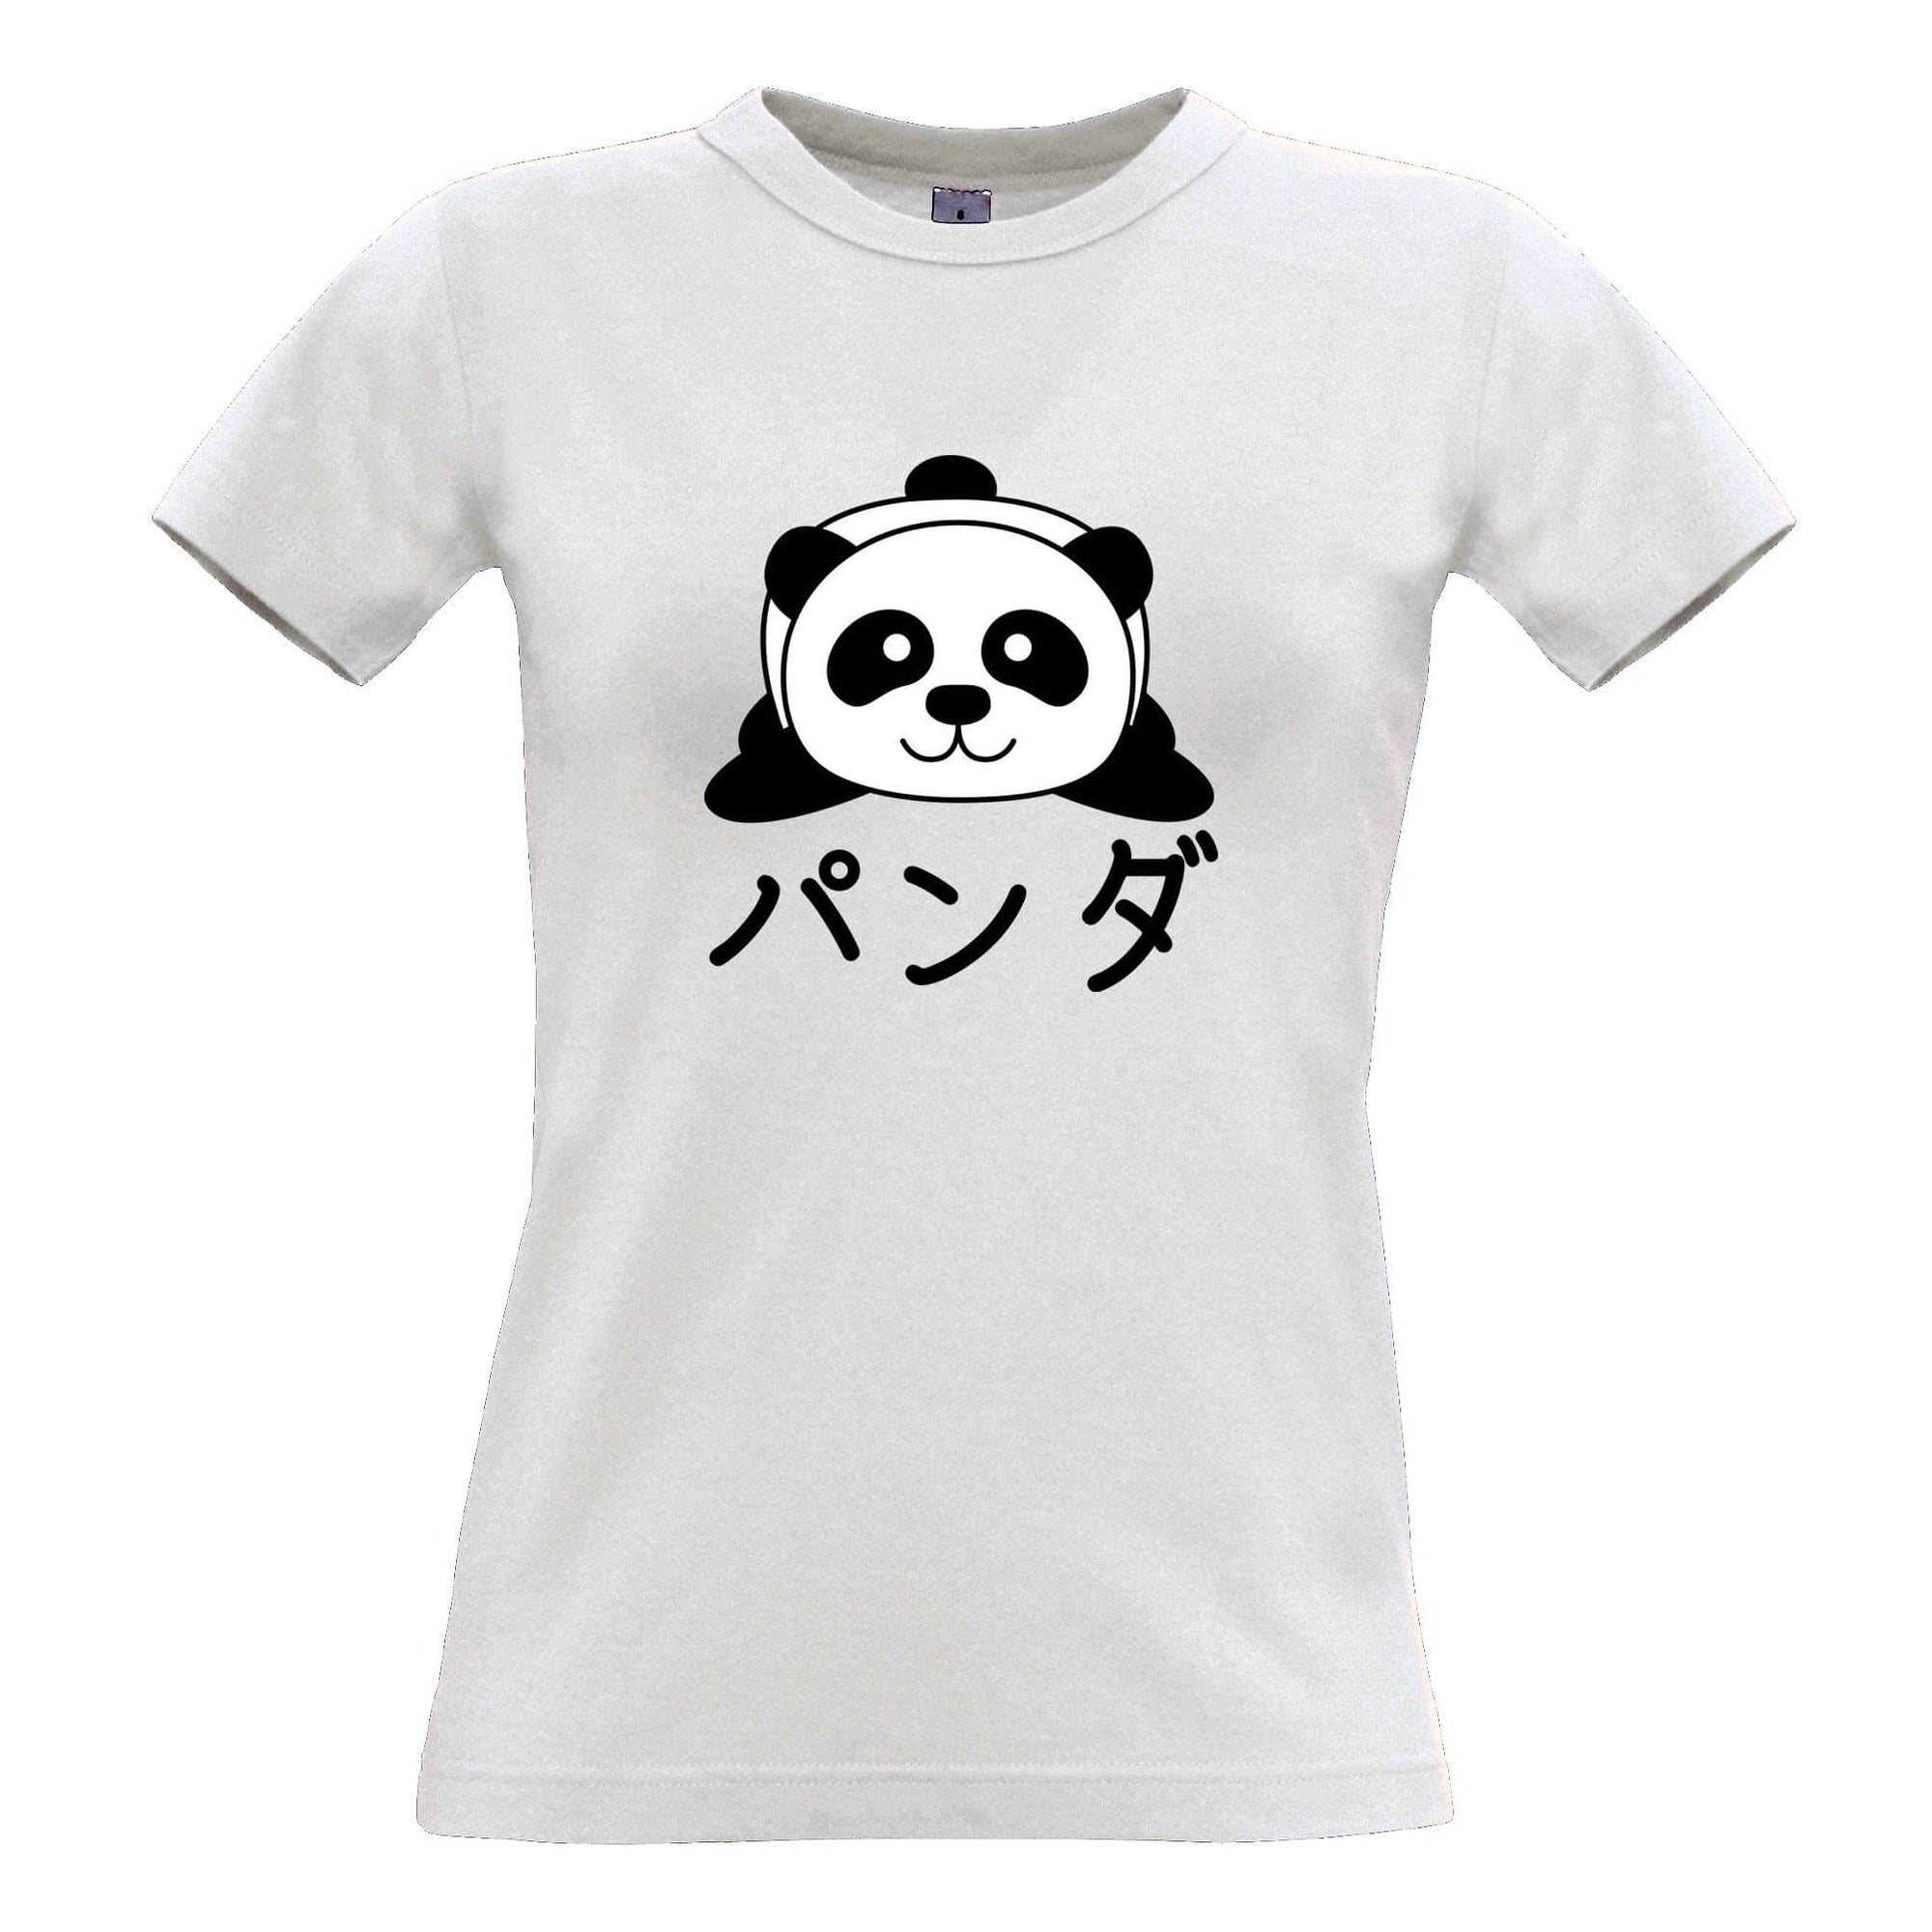 Cute Womens T Shirt Japanese Baby Panda With Text